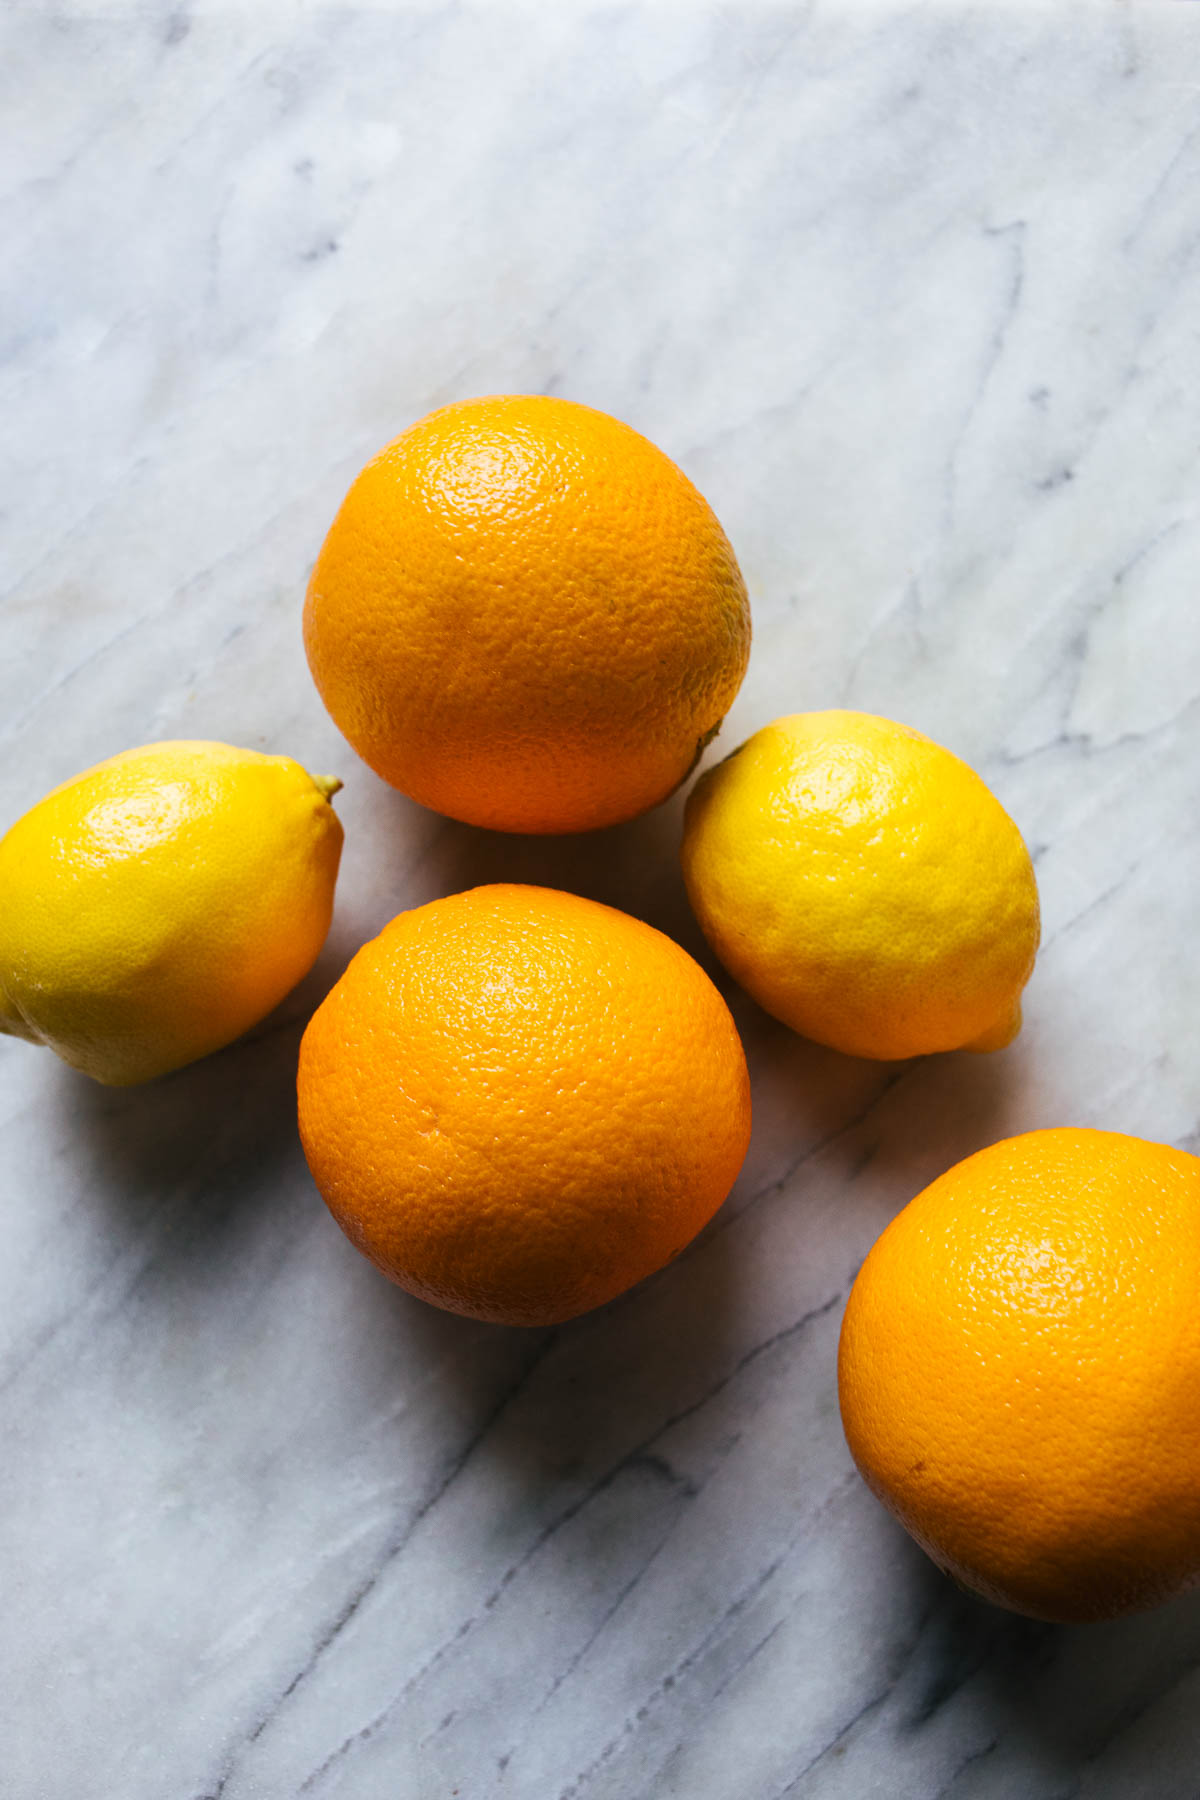 Oranges and lemons on a marble background.